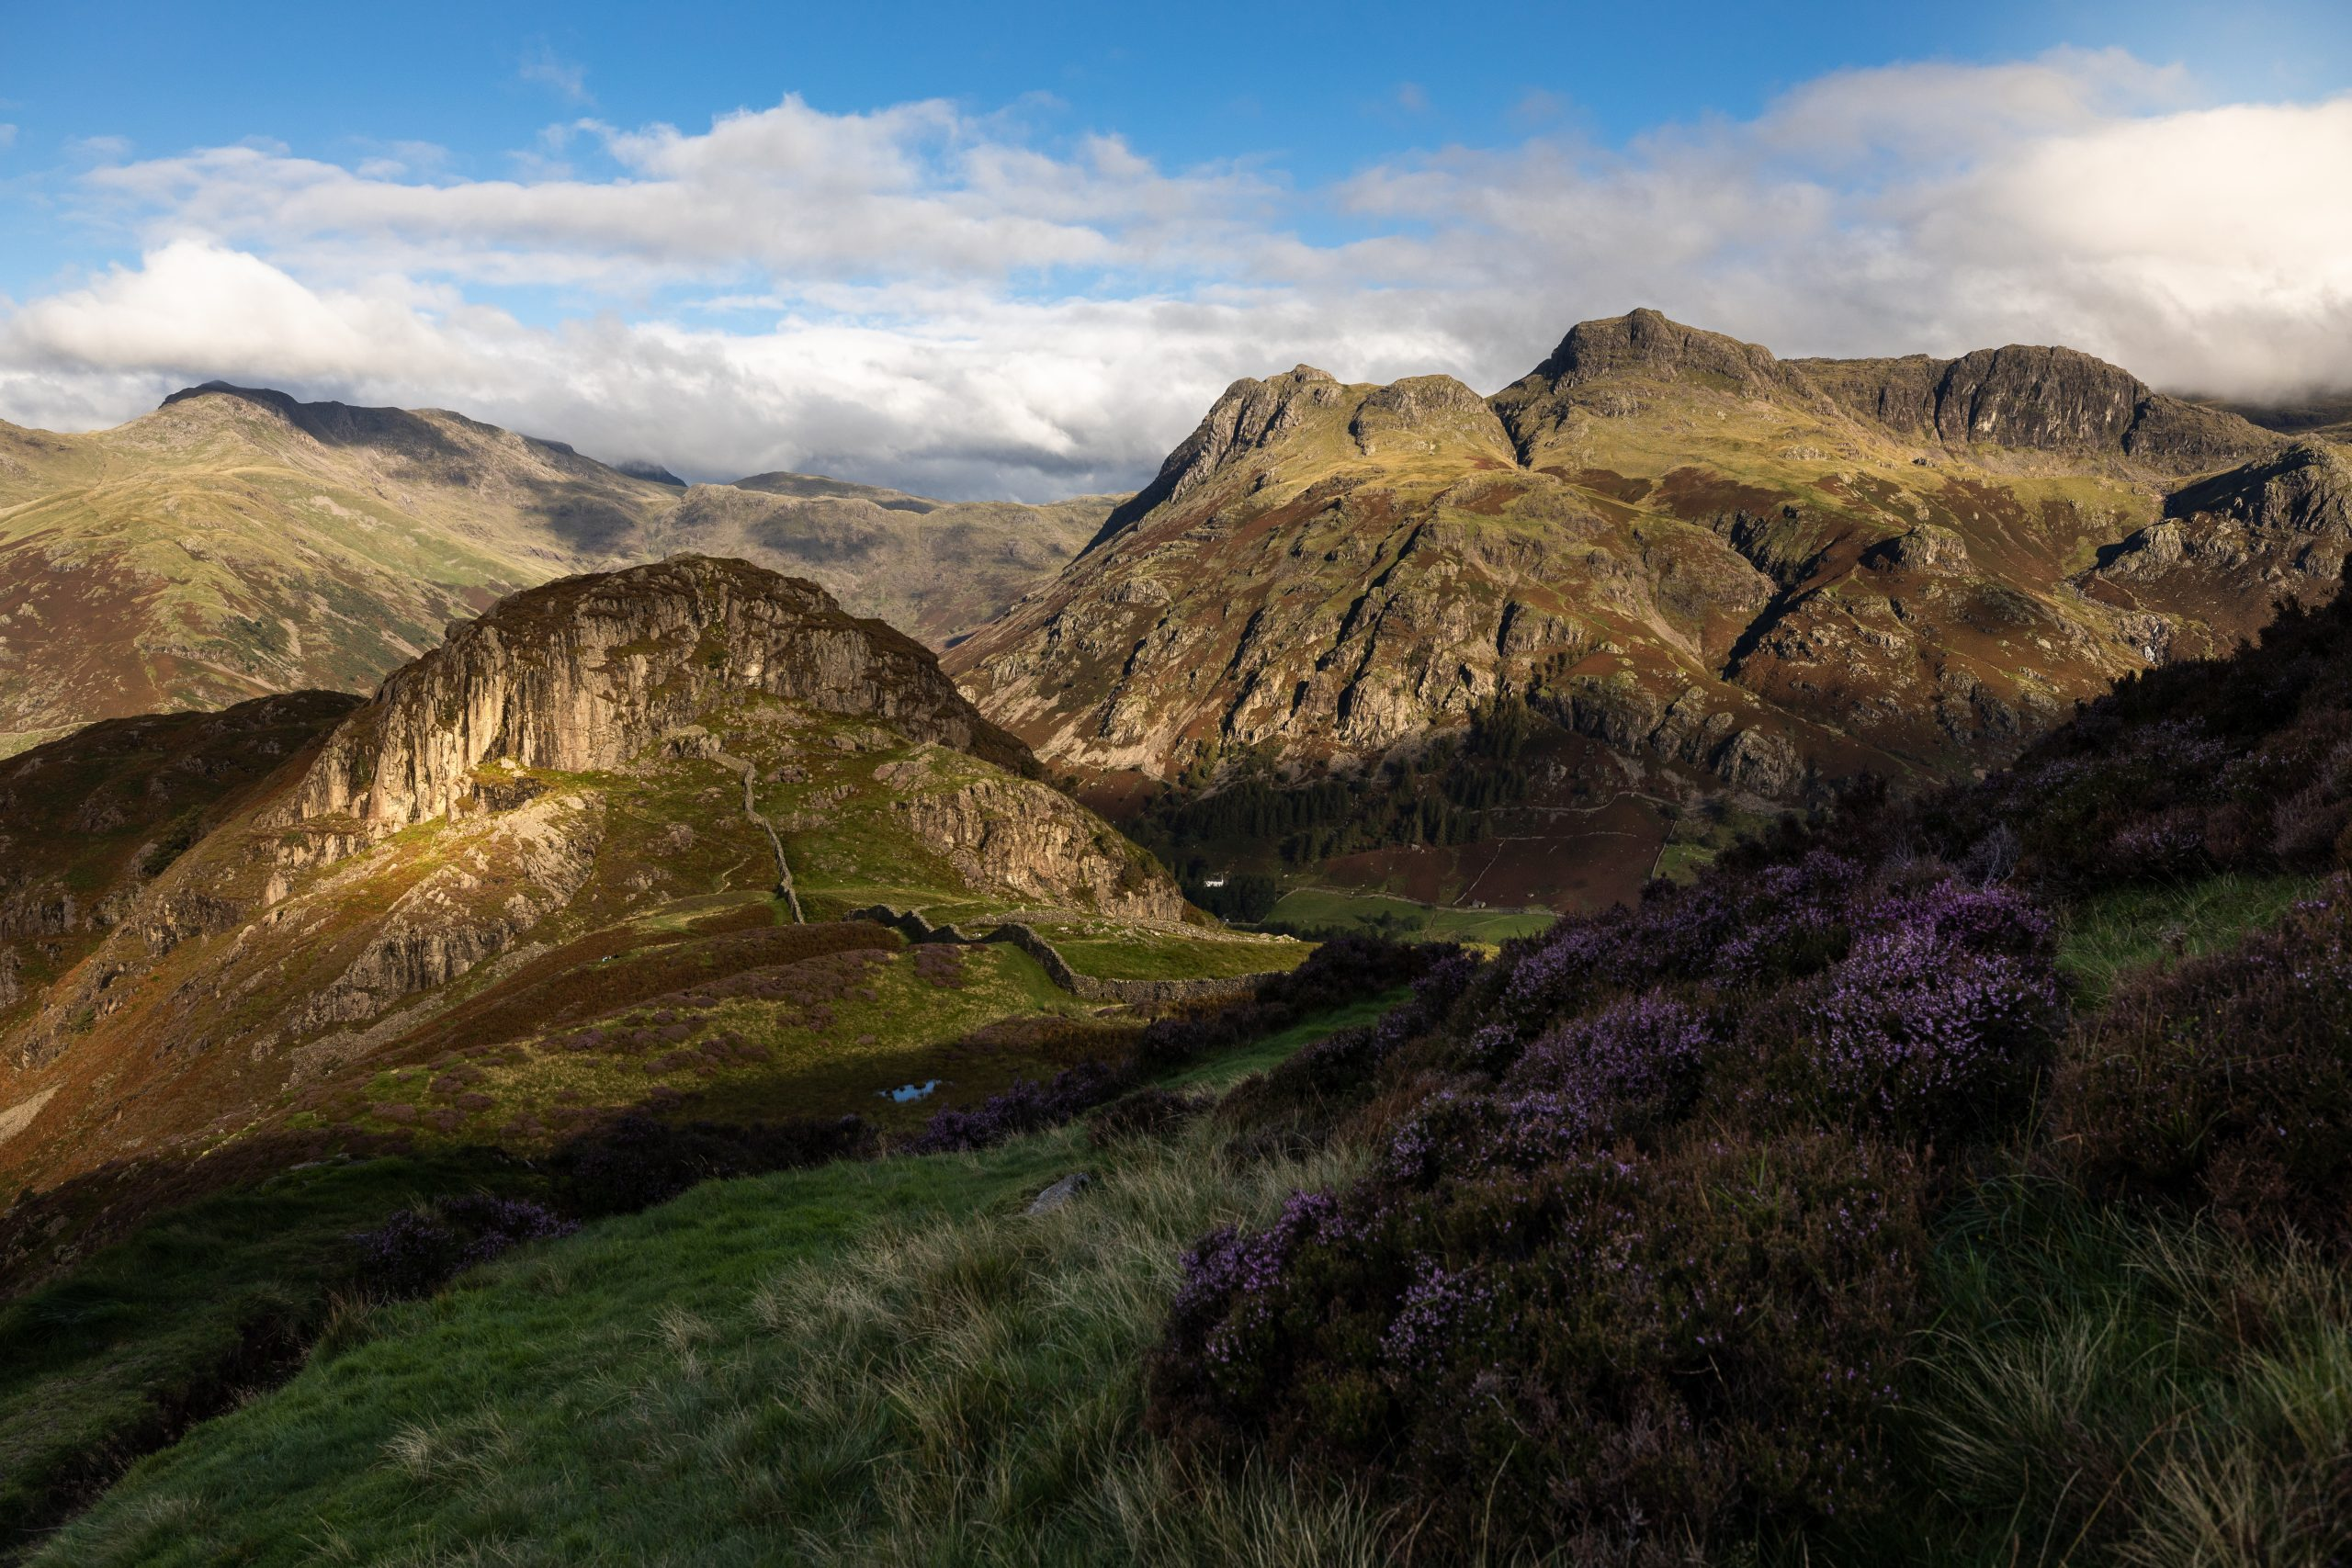 A view of Side Pike and the Langdale Pikes in the early morning sunlight in the Lake District